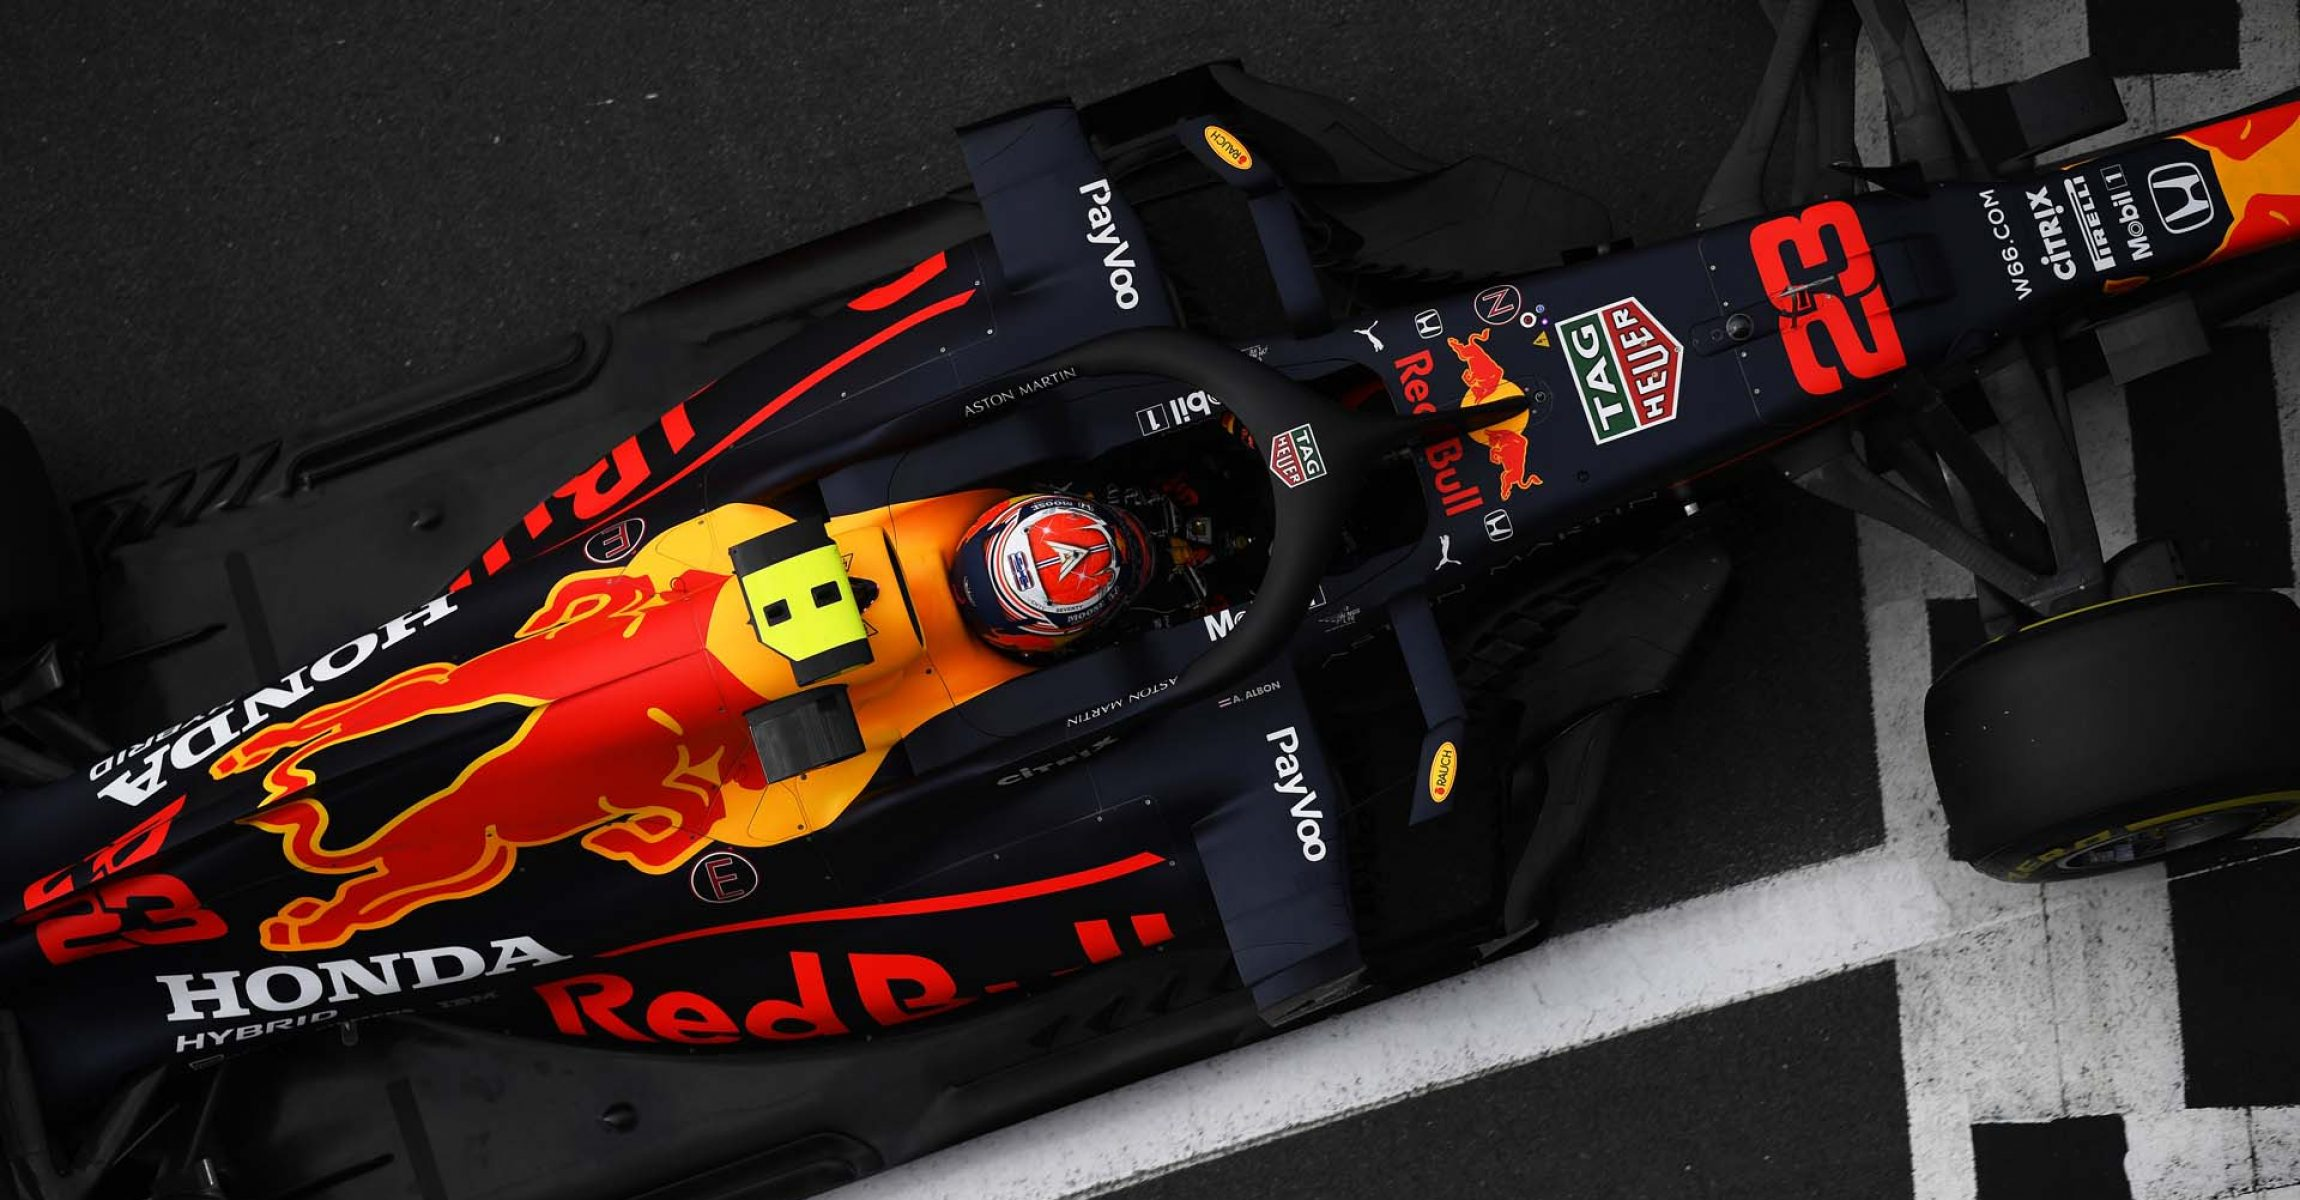 NORTHAMPTON, ENGLAND - AUGUST 08: Alexander Albon of Thailand driving the (23) Aston Martin Red Bull Racing RB16 driving in the pit lane during qualifying for the F1 70th Anniversary Grand Prix at Silverstone on August 08, 2020 in Northampton, England. (Photo by Rudy Carezzevoli/Getty Images)